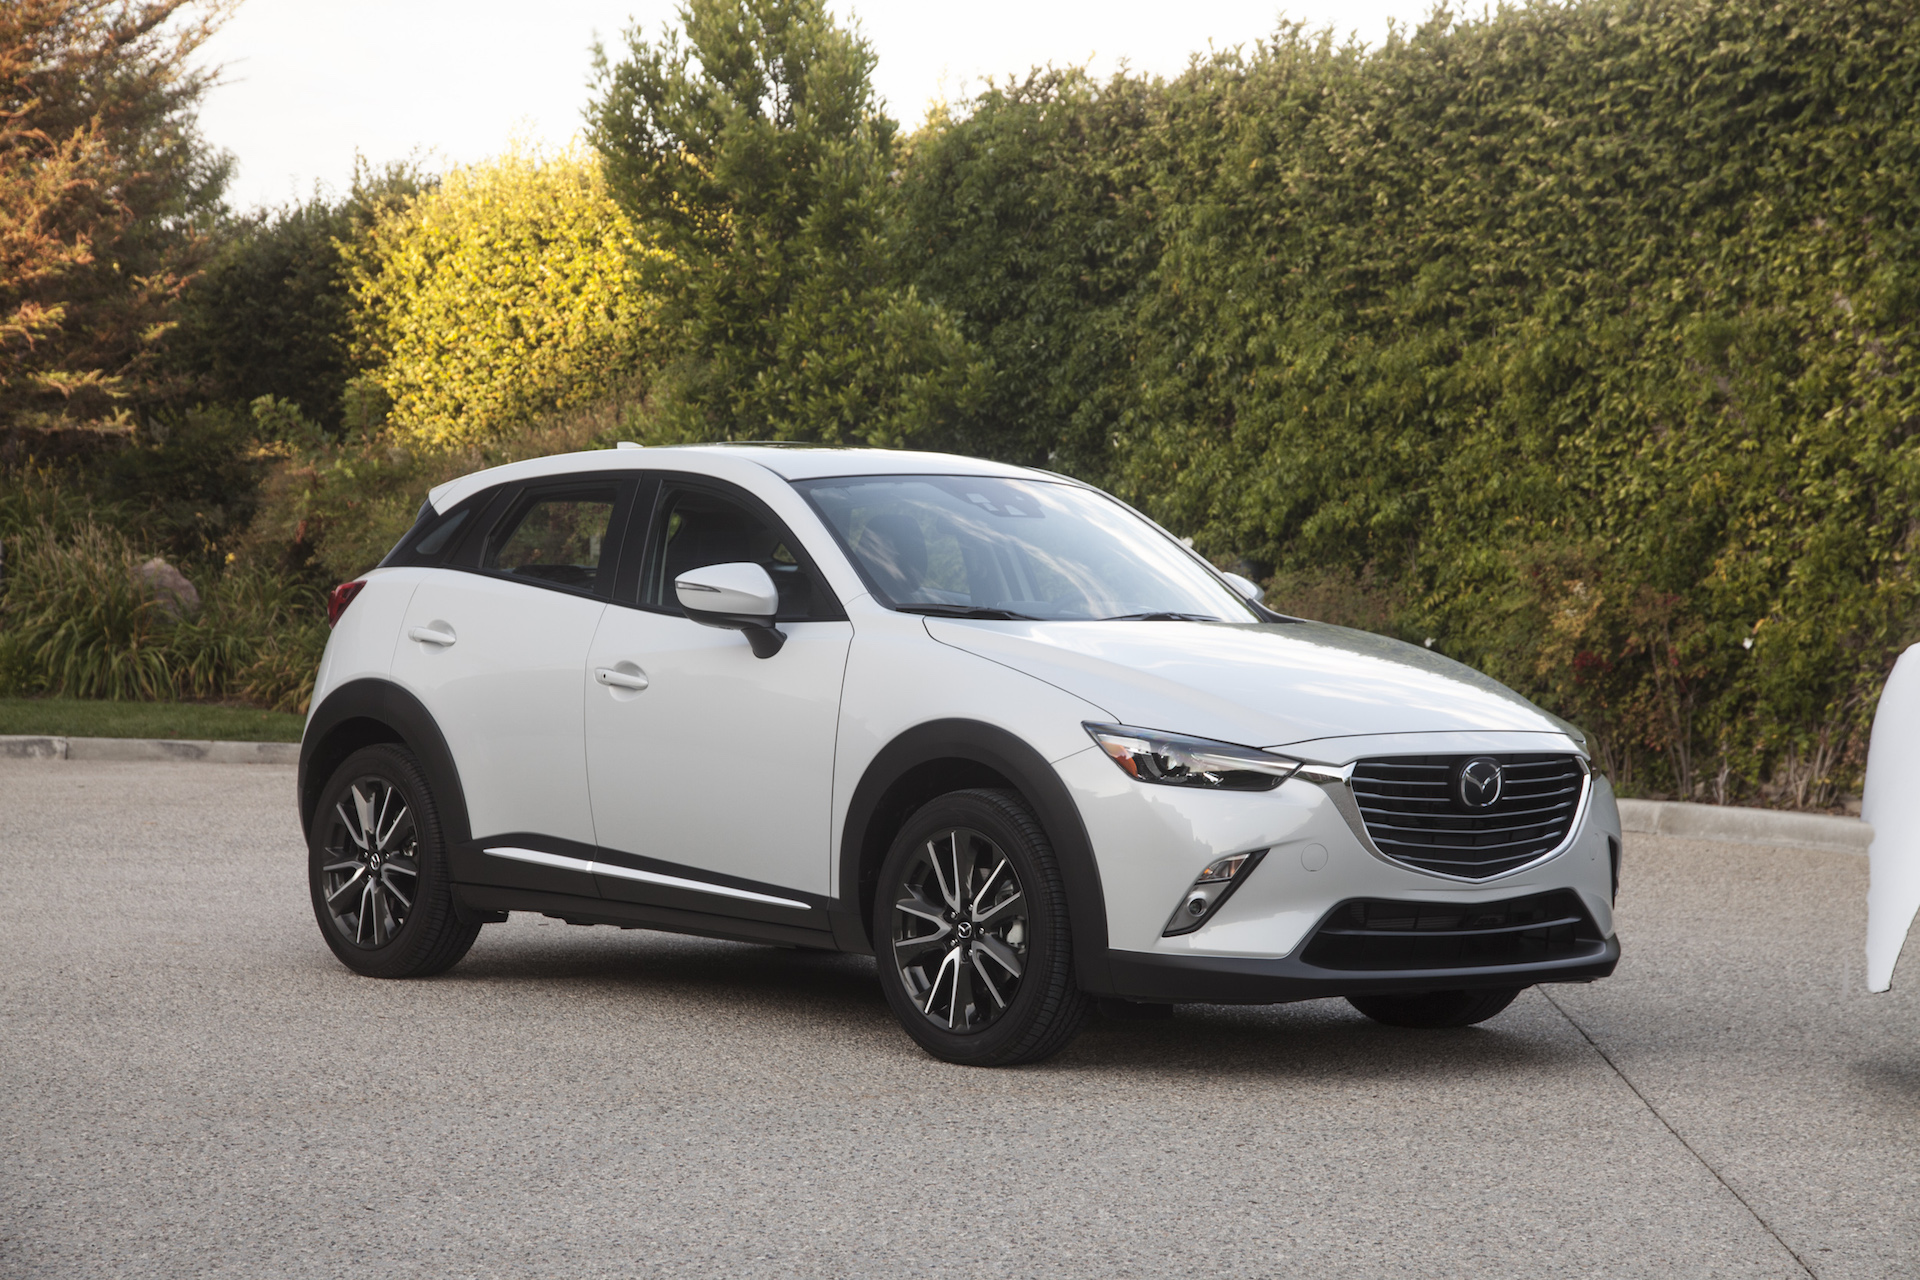 new and used mazda cx 3 prices photos reviews specs. Black Bedroom Furniture Sets. Home Design Ideas